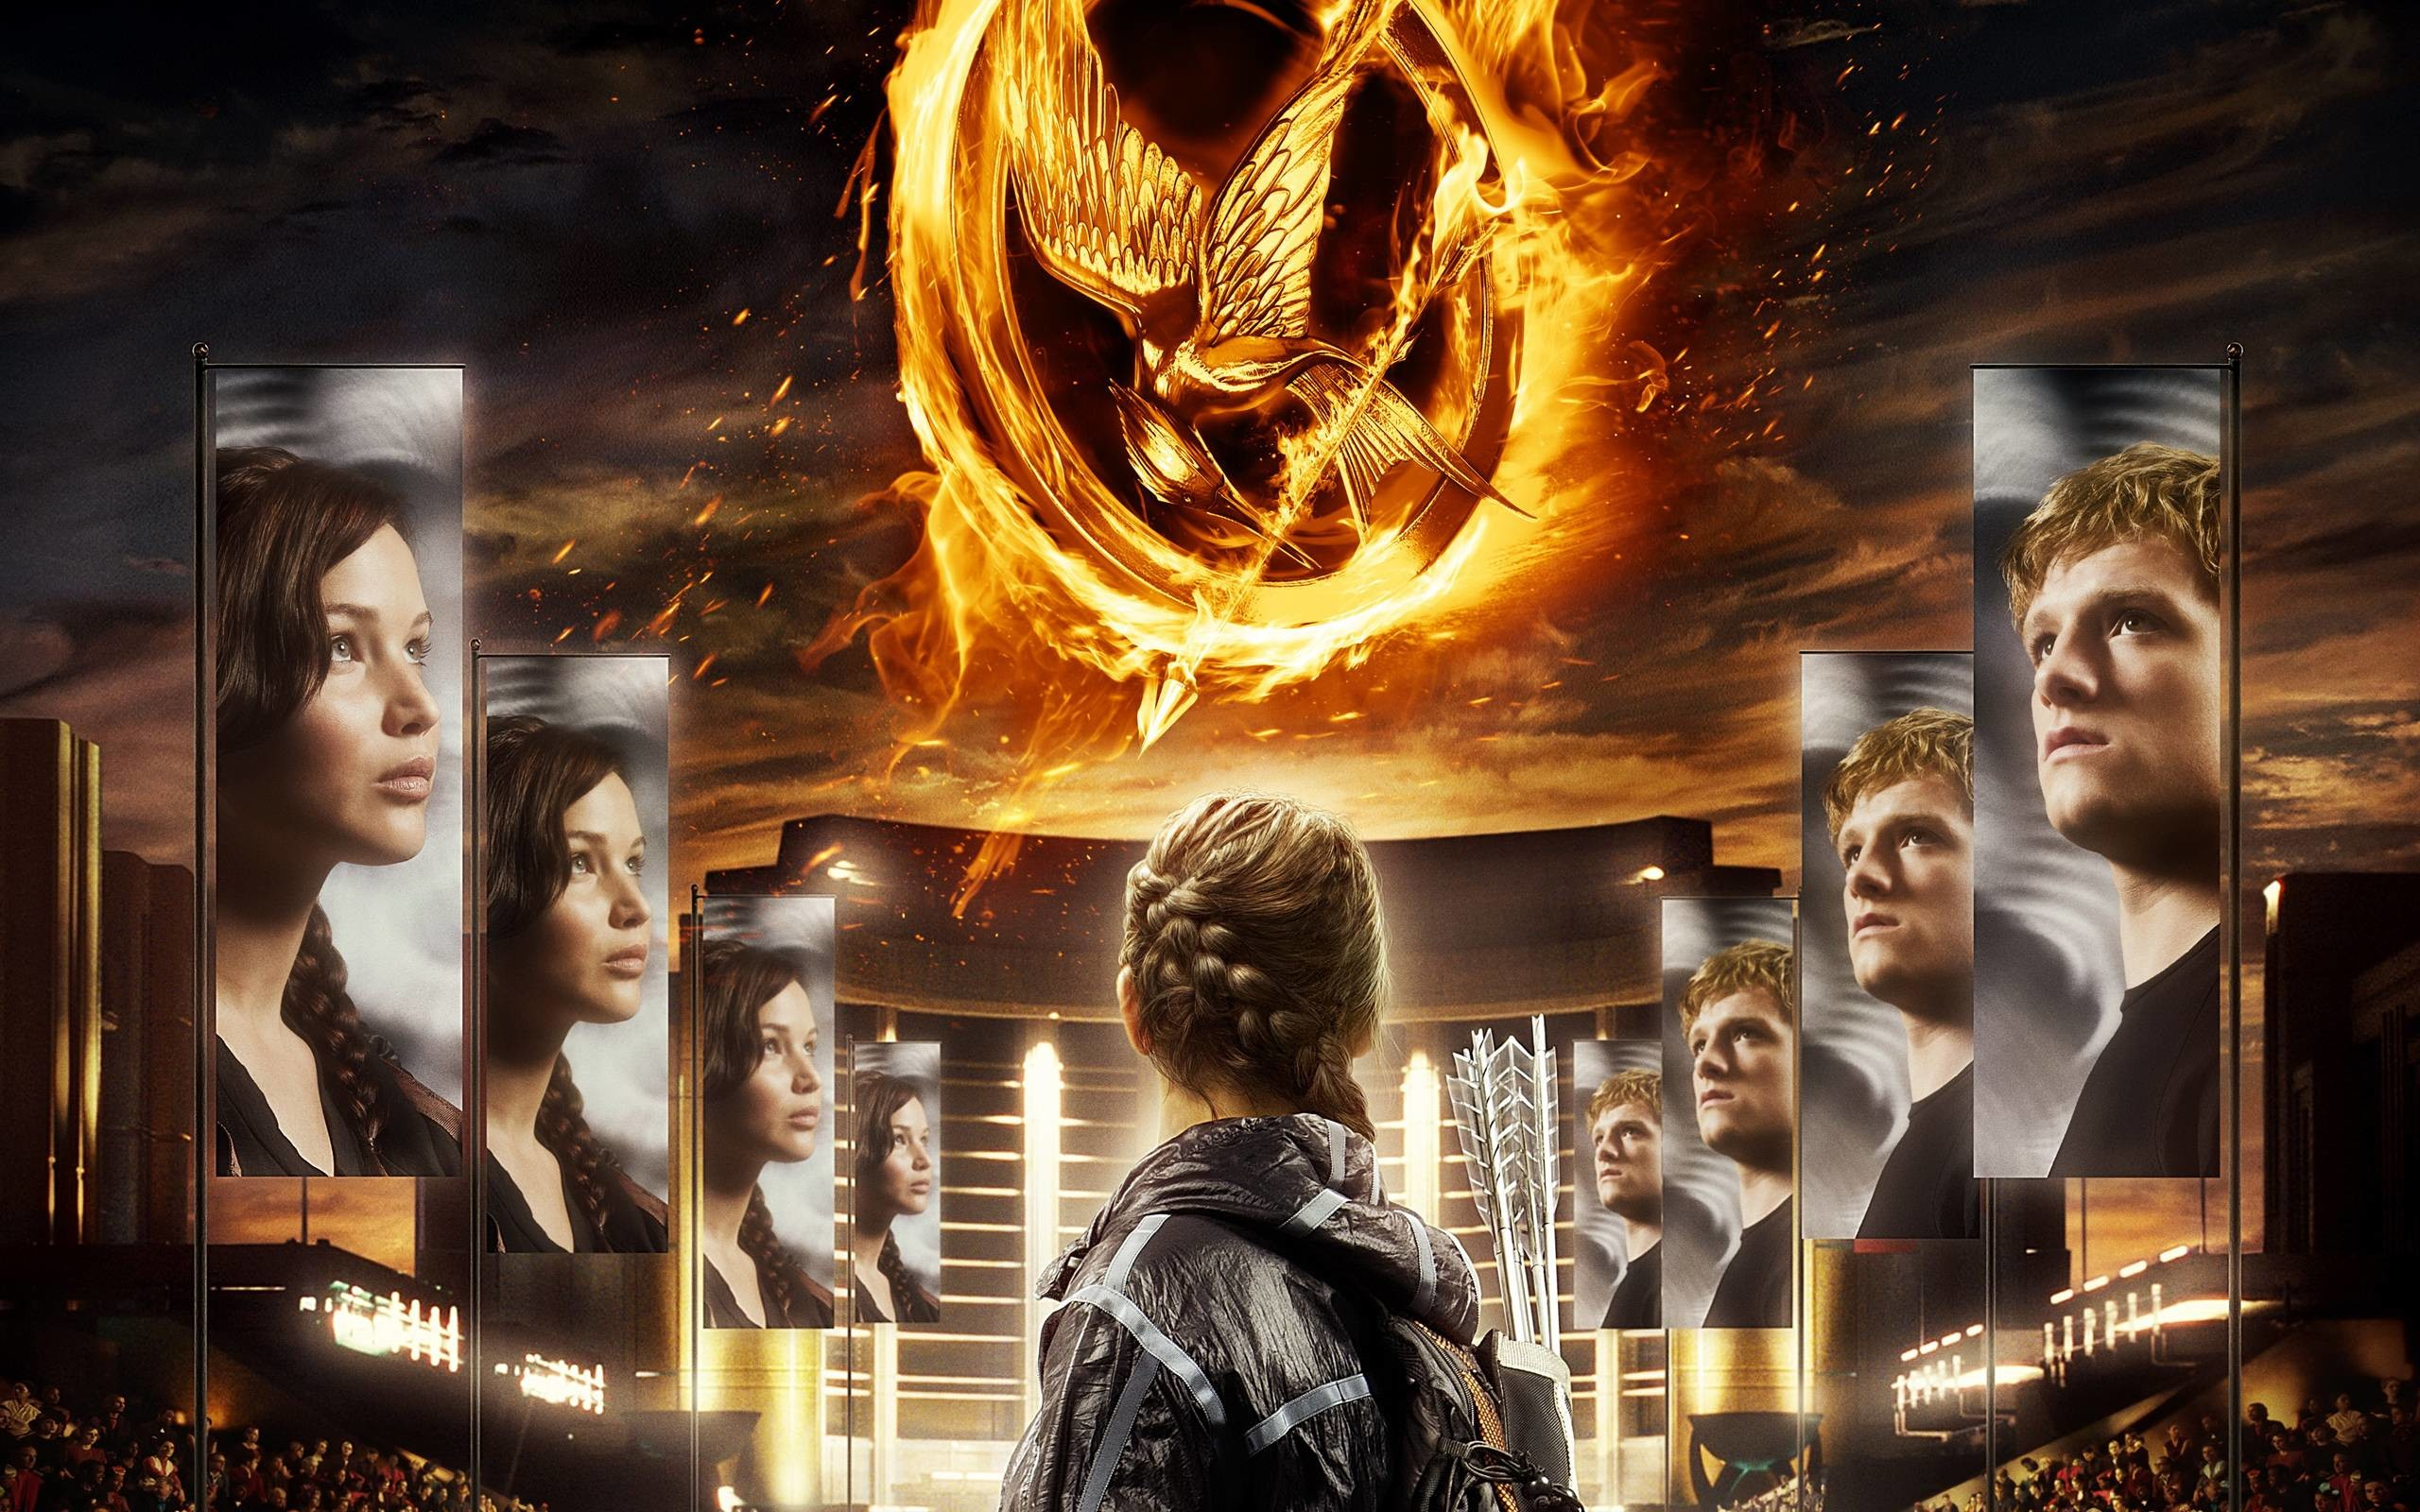 2560x1600 The Hunger Games 2012 Wallpapers | HD Wallpapers